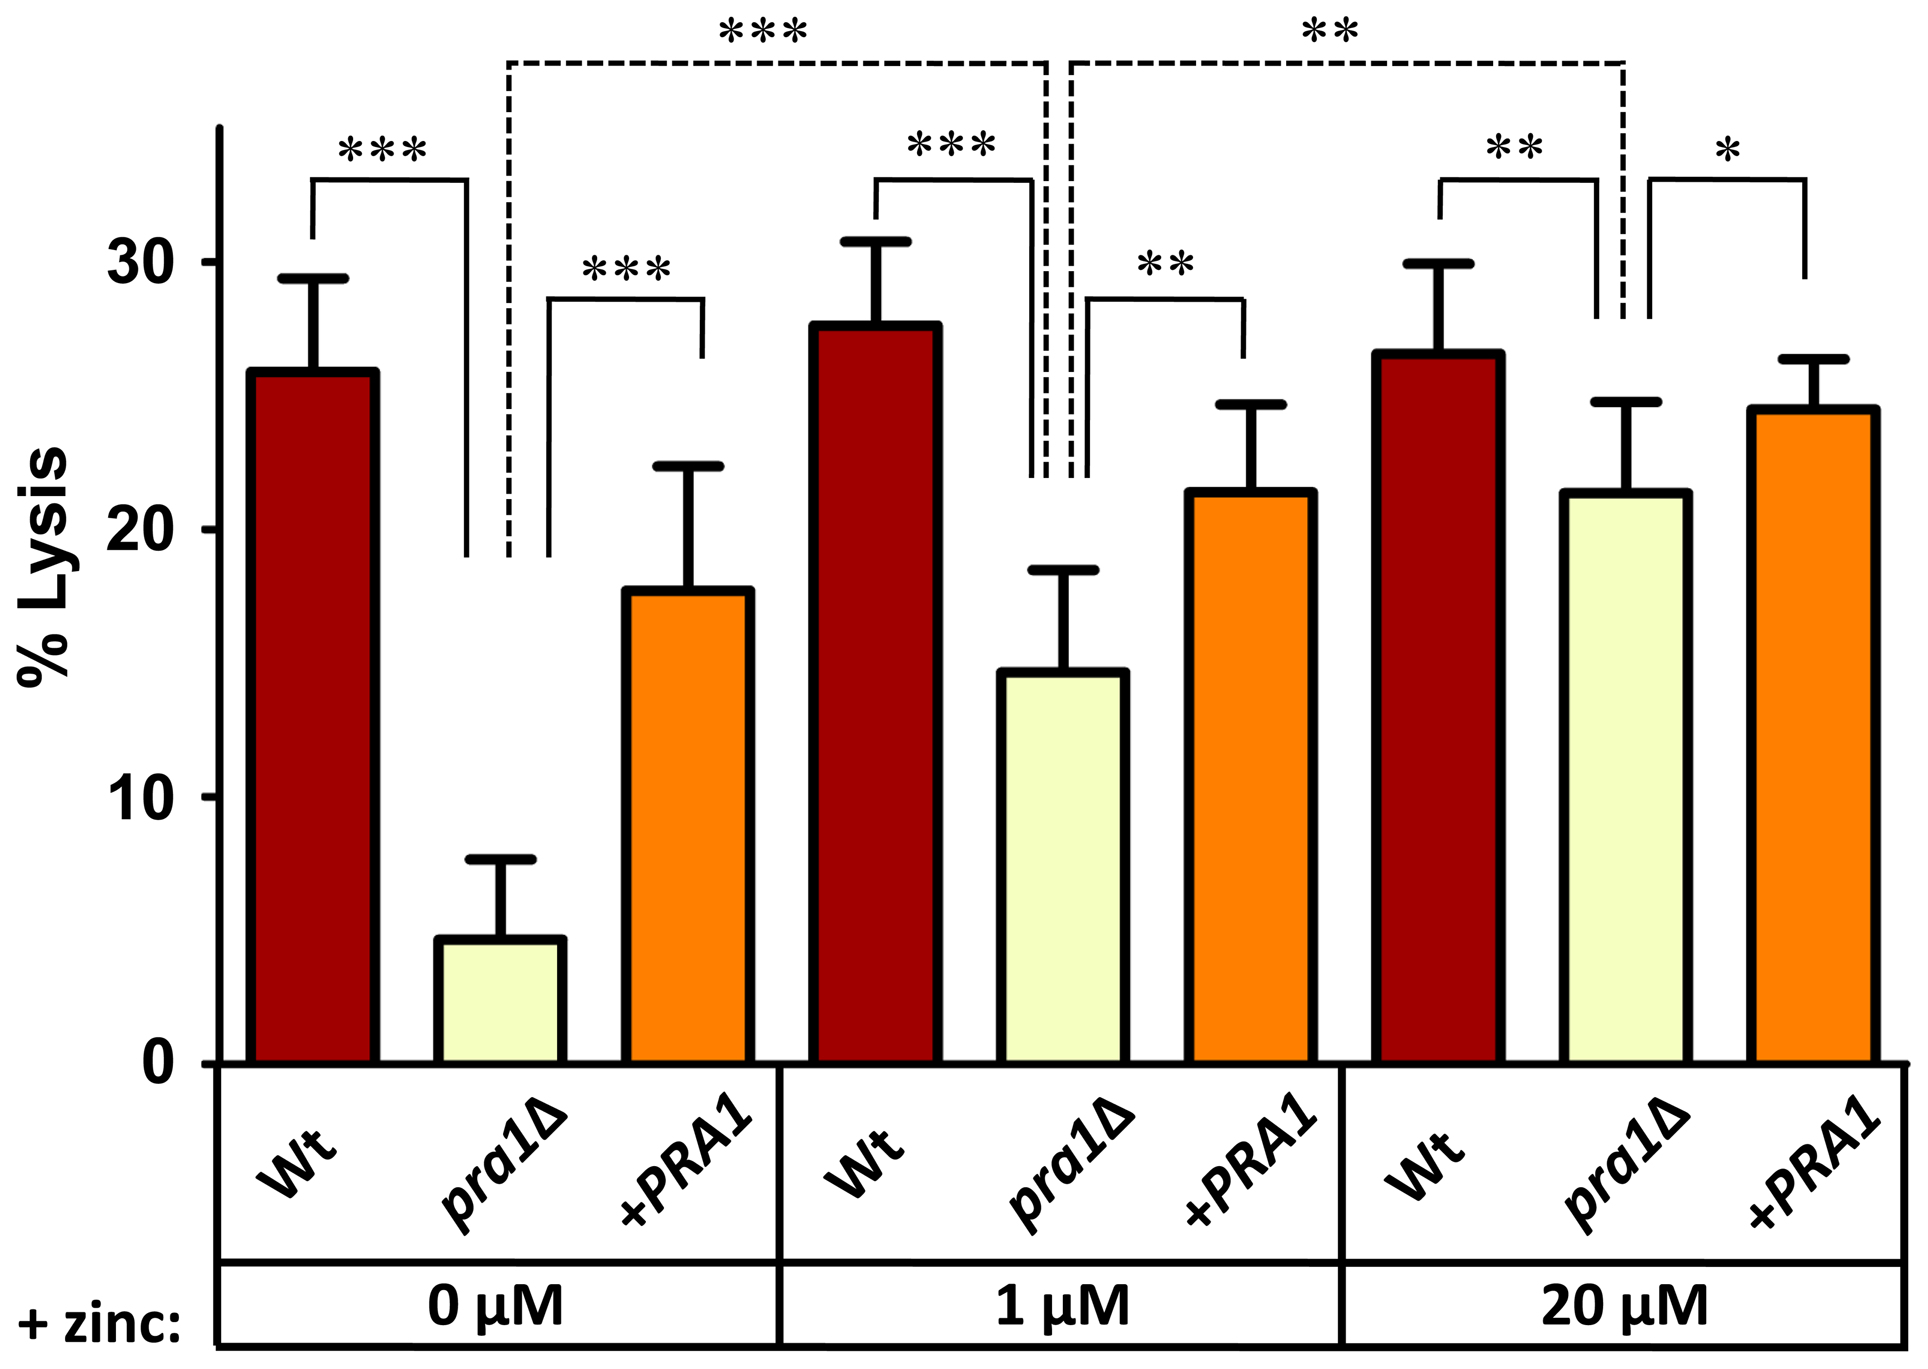 Endothelial damage is zinc-dependent in the absence of <i>PRA1</i>.